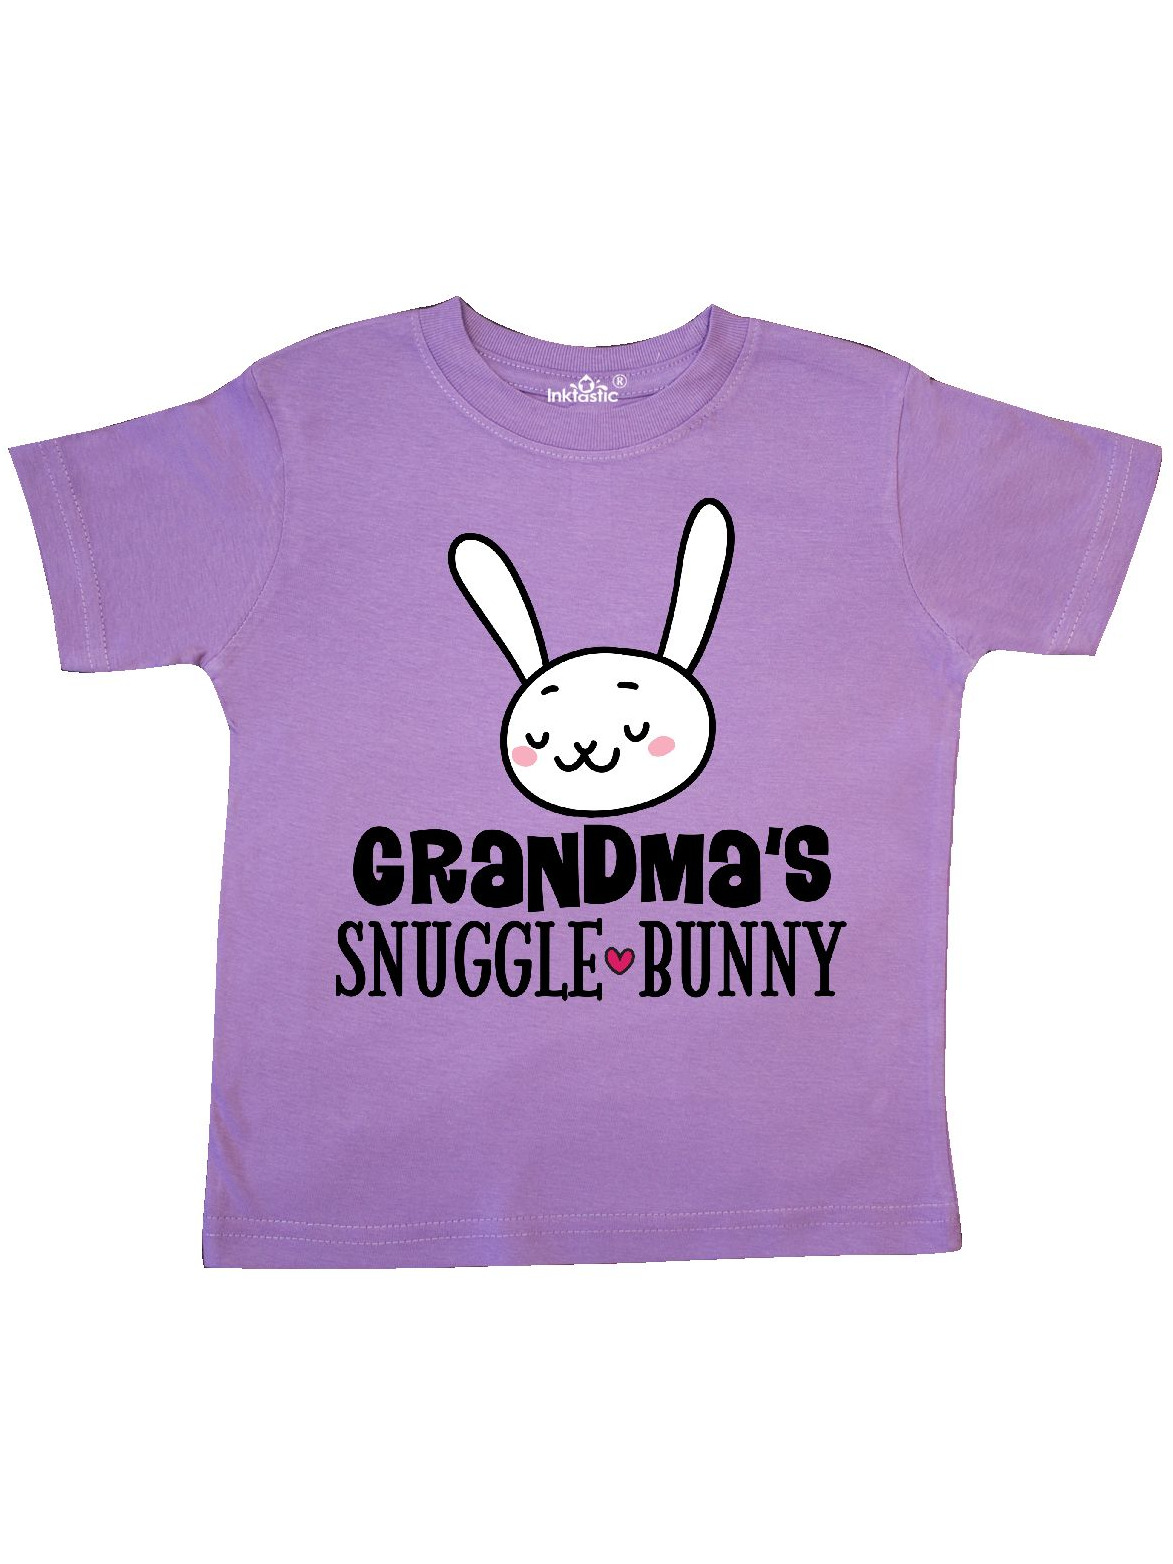 Grandma Snuggle Bunny Easter Outfit Toddler T-Shirt